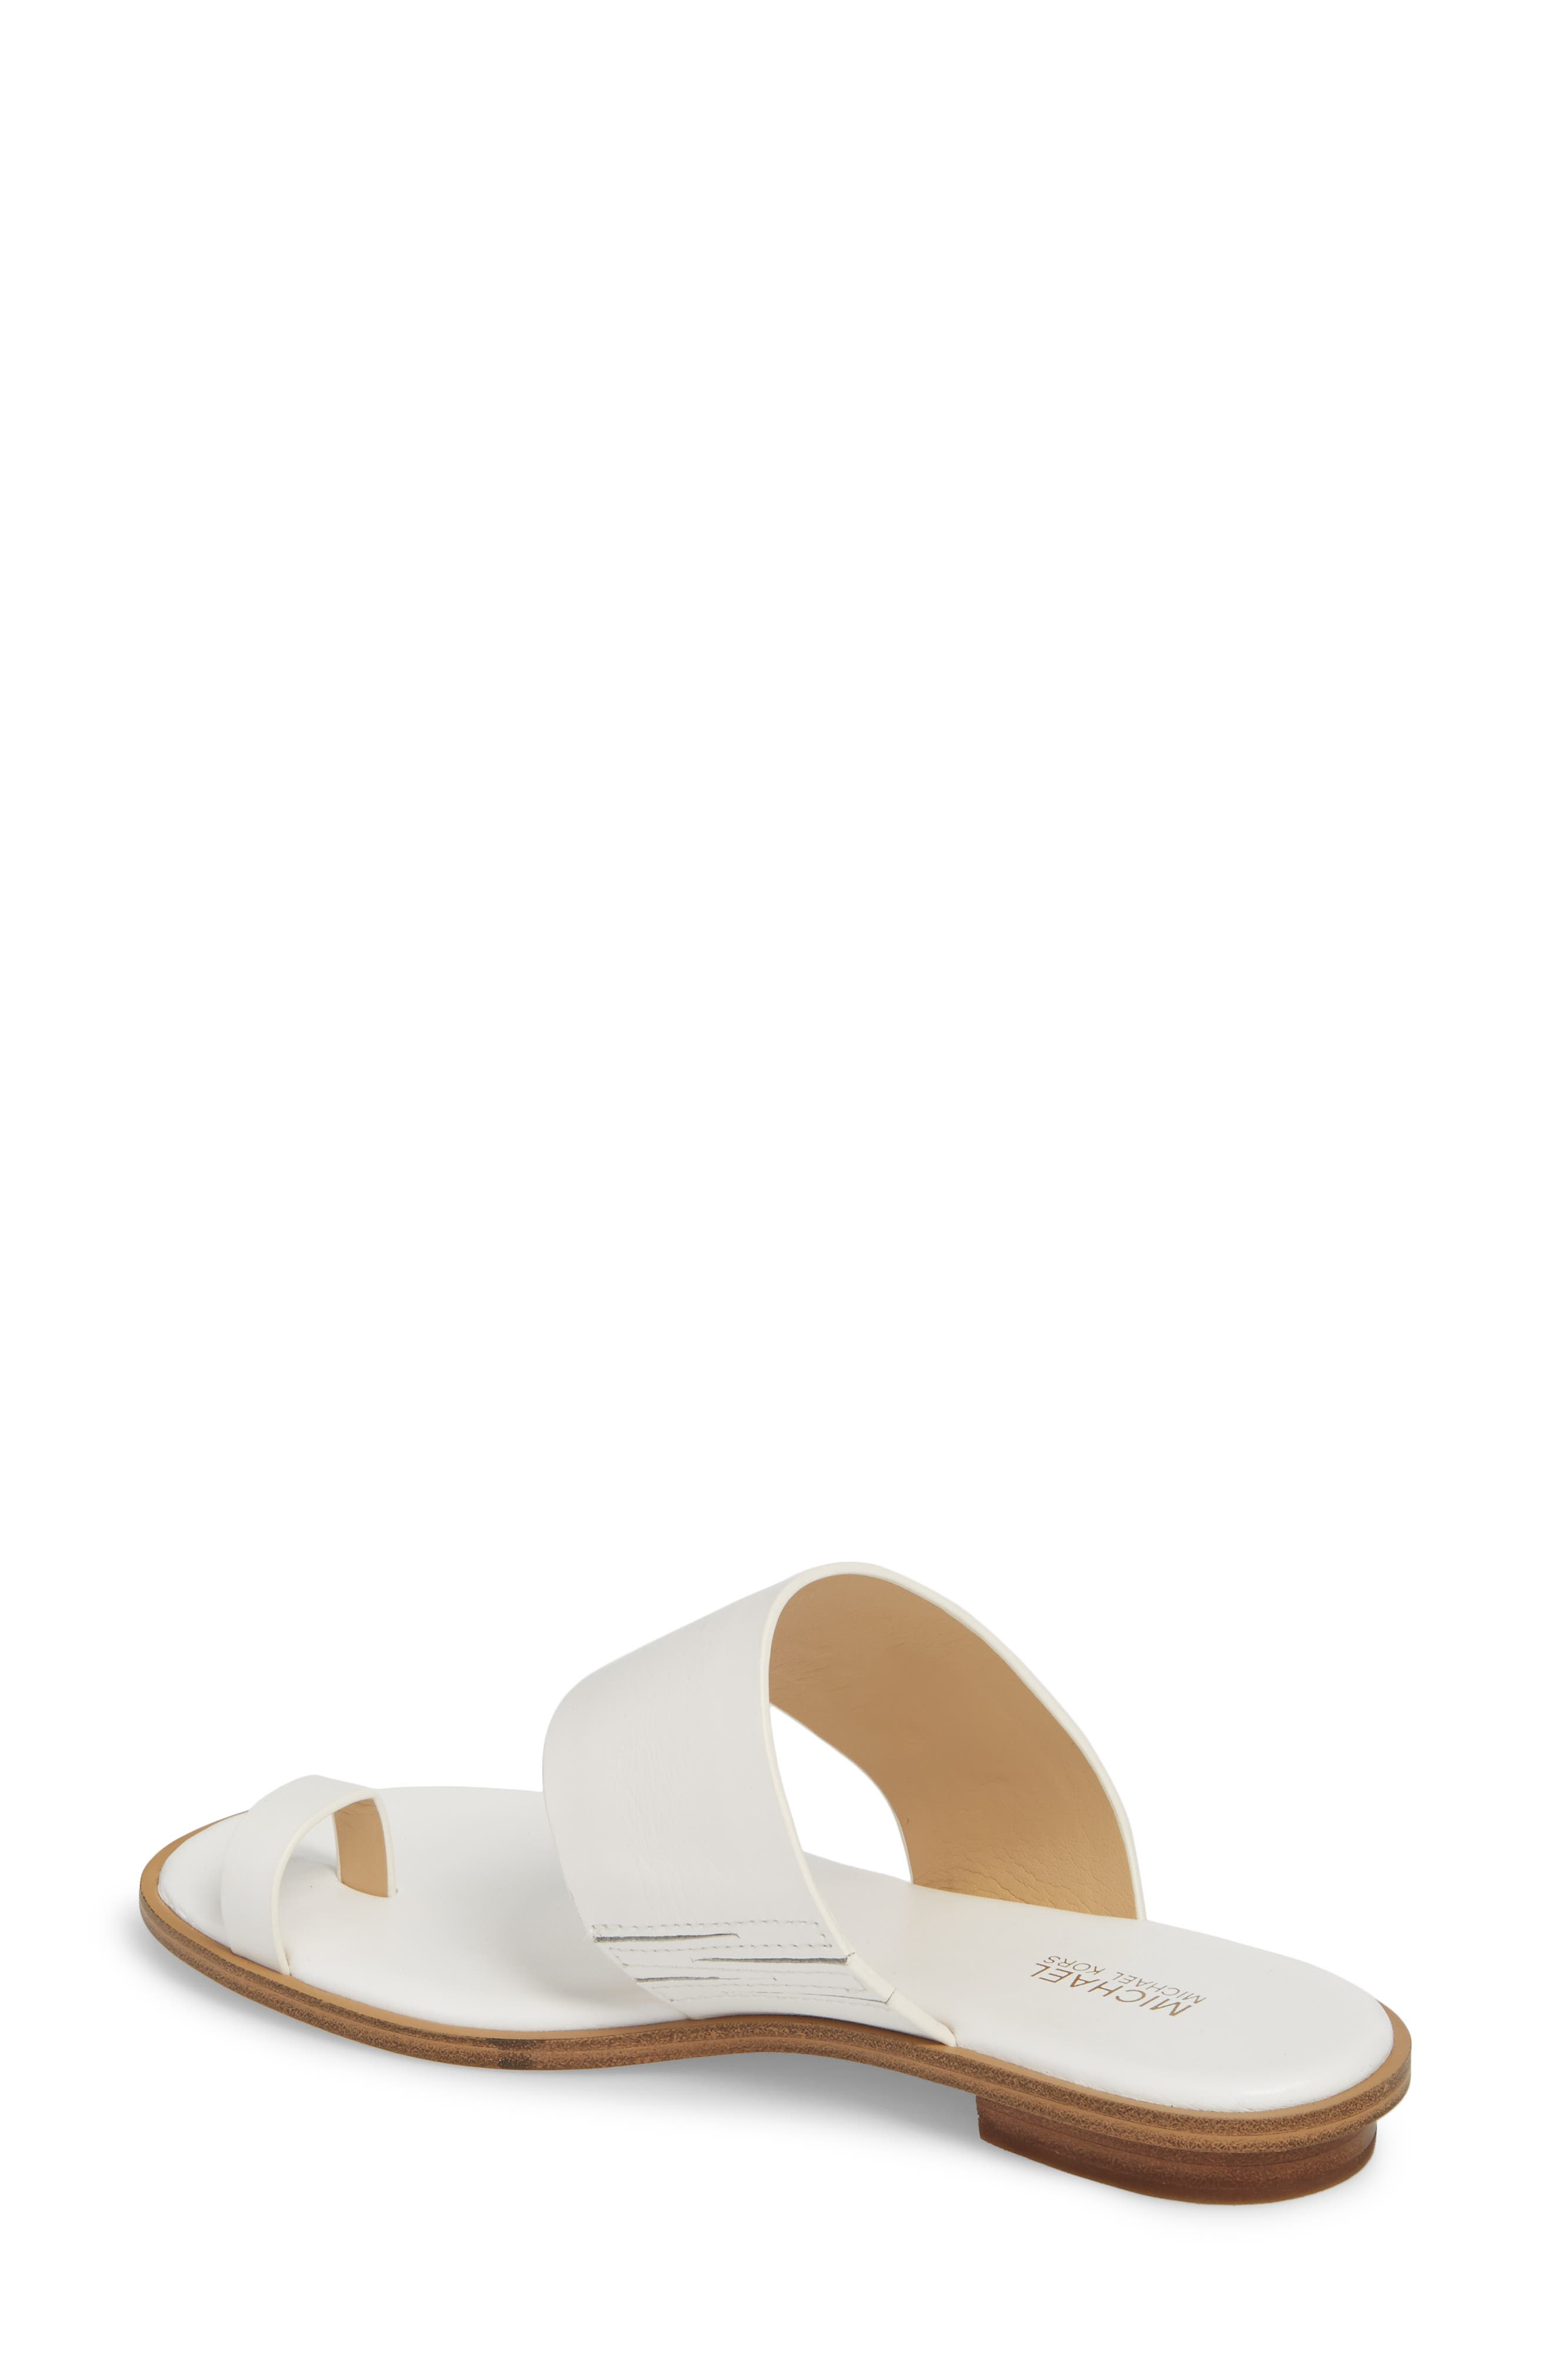 Sonya Sandal,                             Alternate thumbnail 2, color,                             Optic White Leather